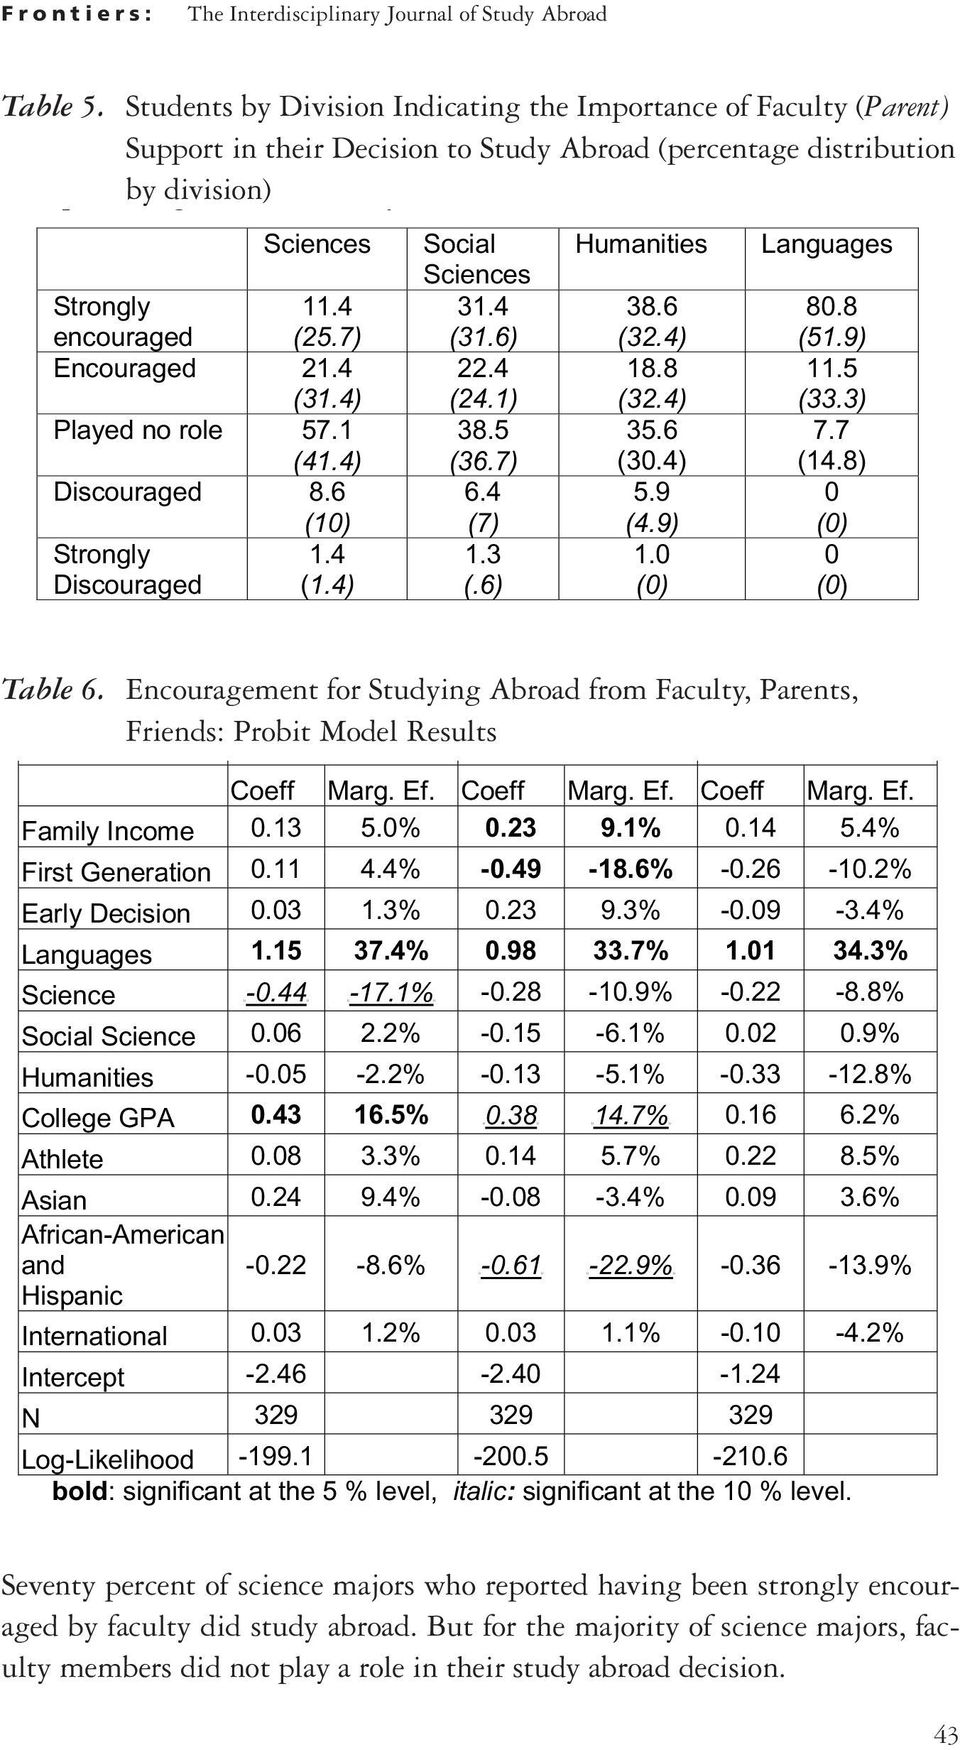 (percentage to Study Abroad distribution (percentage parent, by division) faculty distribution and friends by division) encouragement variables as the dependent Sciences variables.